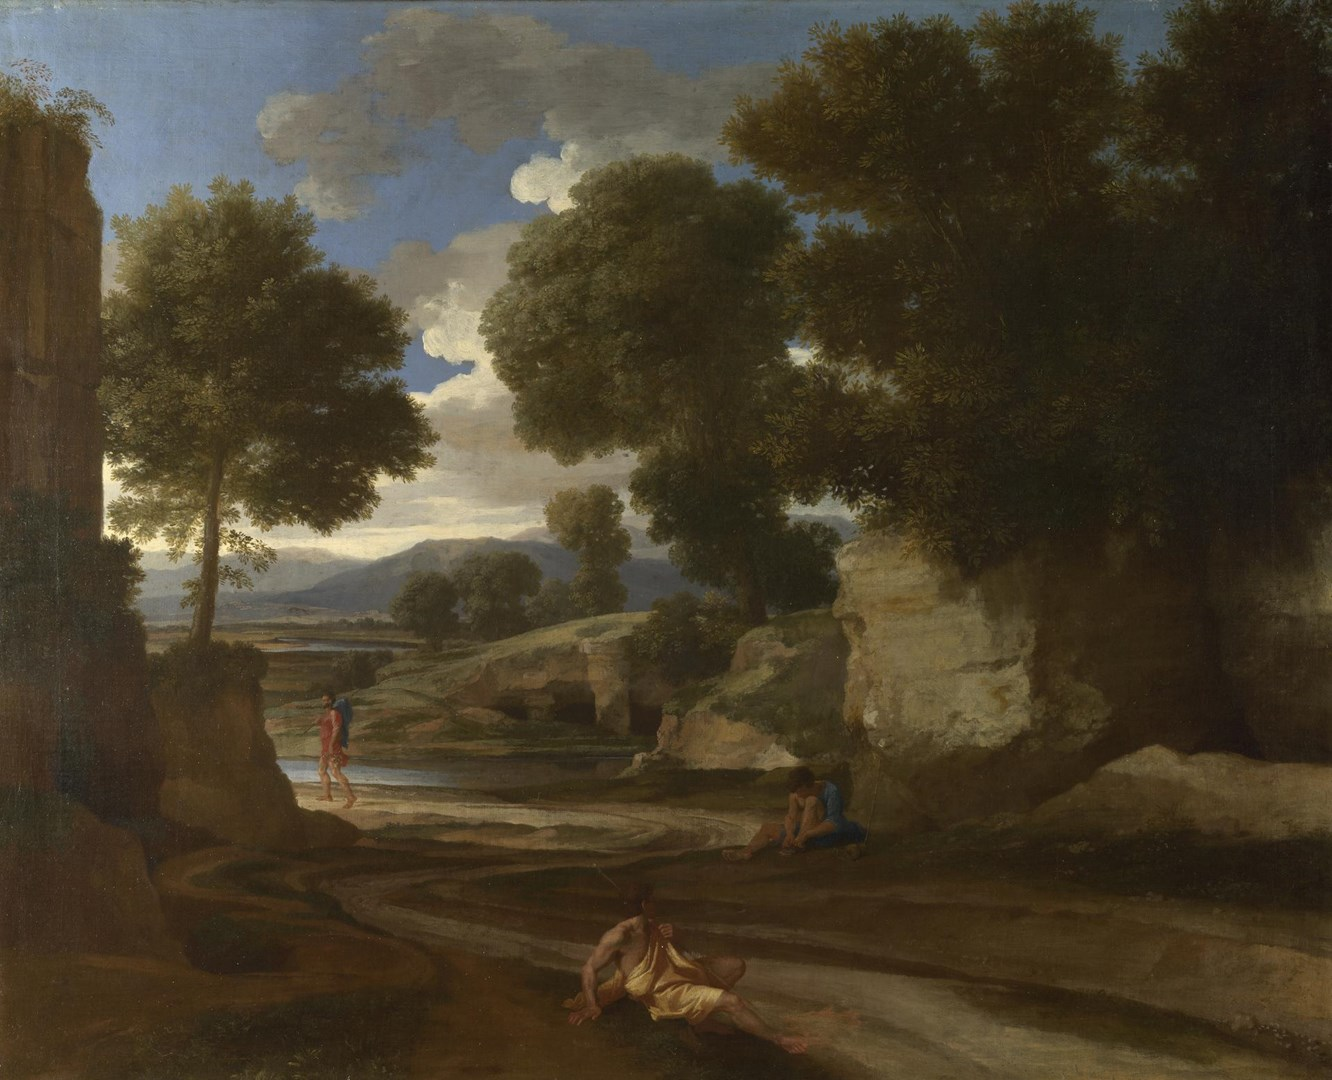 Landscape with Travellers Resting by Nicolas Poussin